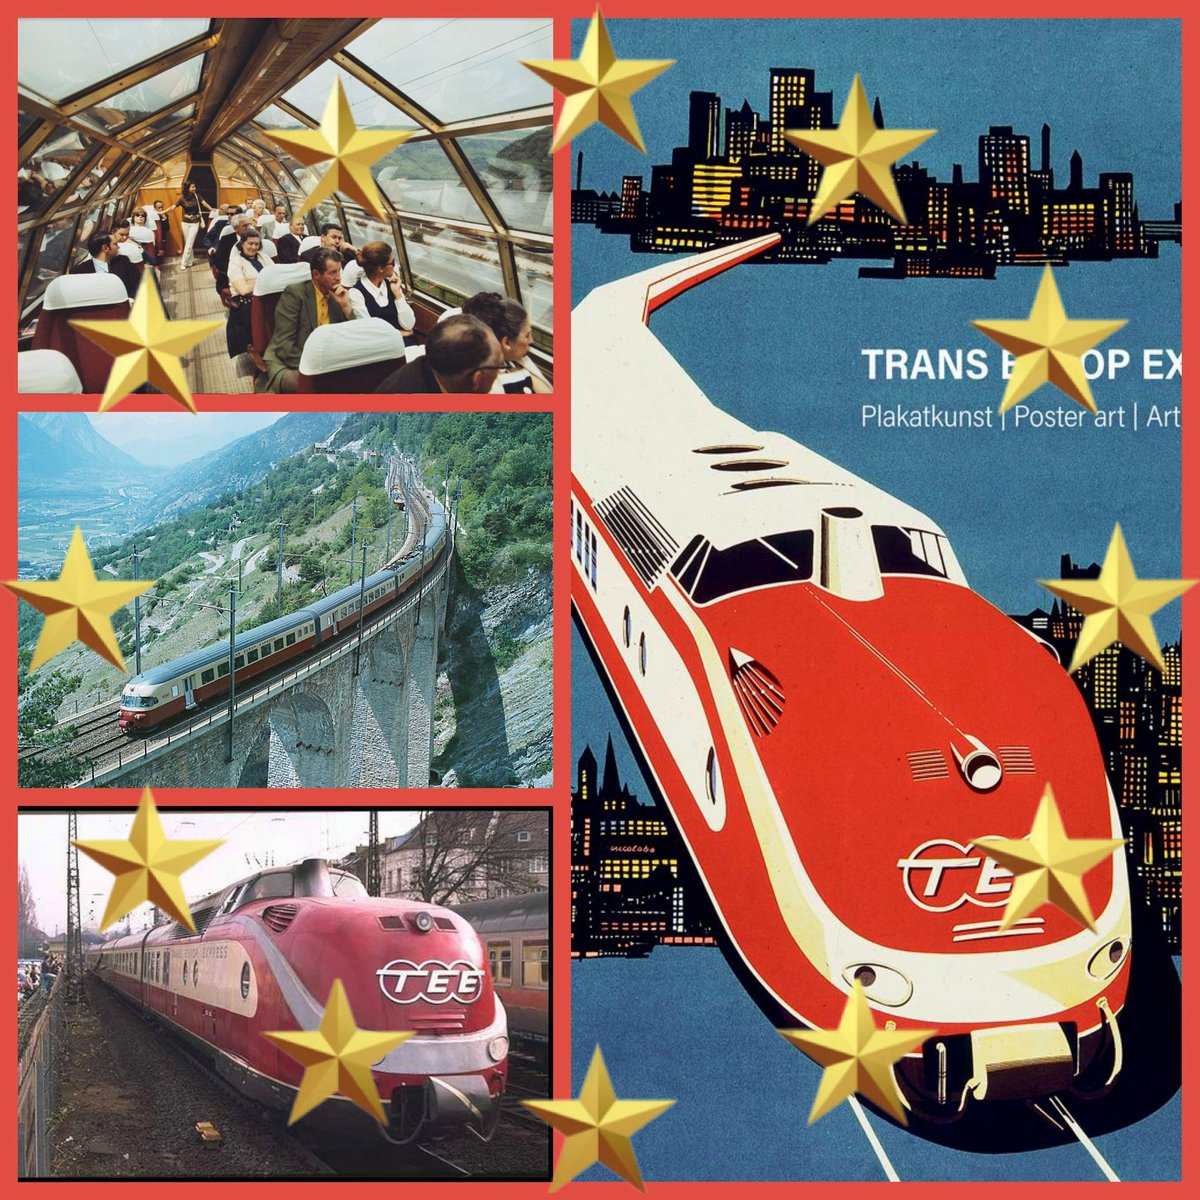 Great news for EU rail fans! 🇪🇺 Plans have been announced to reintroduce new high speed versions of the Trans-Europe-Express. Early routes could be Paris-Warsaw via Brussels, Cologne & Berlin. Amsterdam-Rome via Cologne & Basel. Berlin-Barcelona. Stockholm-Munich. Berlin-Rome ... https://t.co/iWaJ5eZbGu